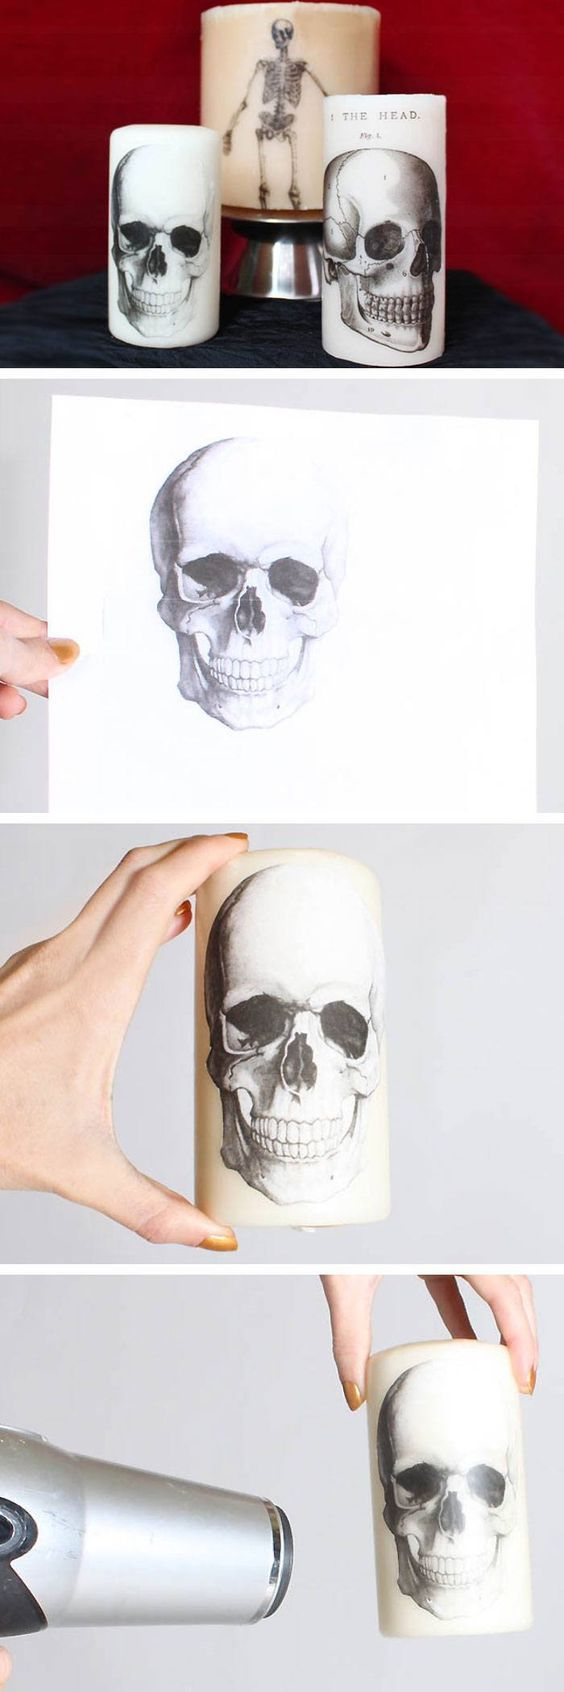 DIY Printed Halloween Candles   Click Pic for 20 DIY Halloween Decorations for Kids to Make   Cheap and Easy Halloween Decorations on a Budget